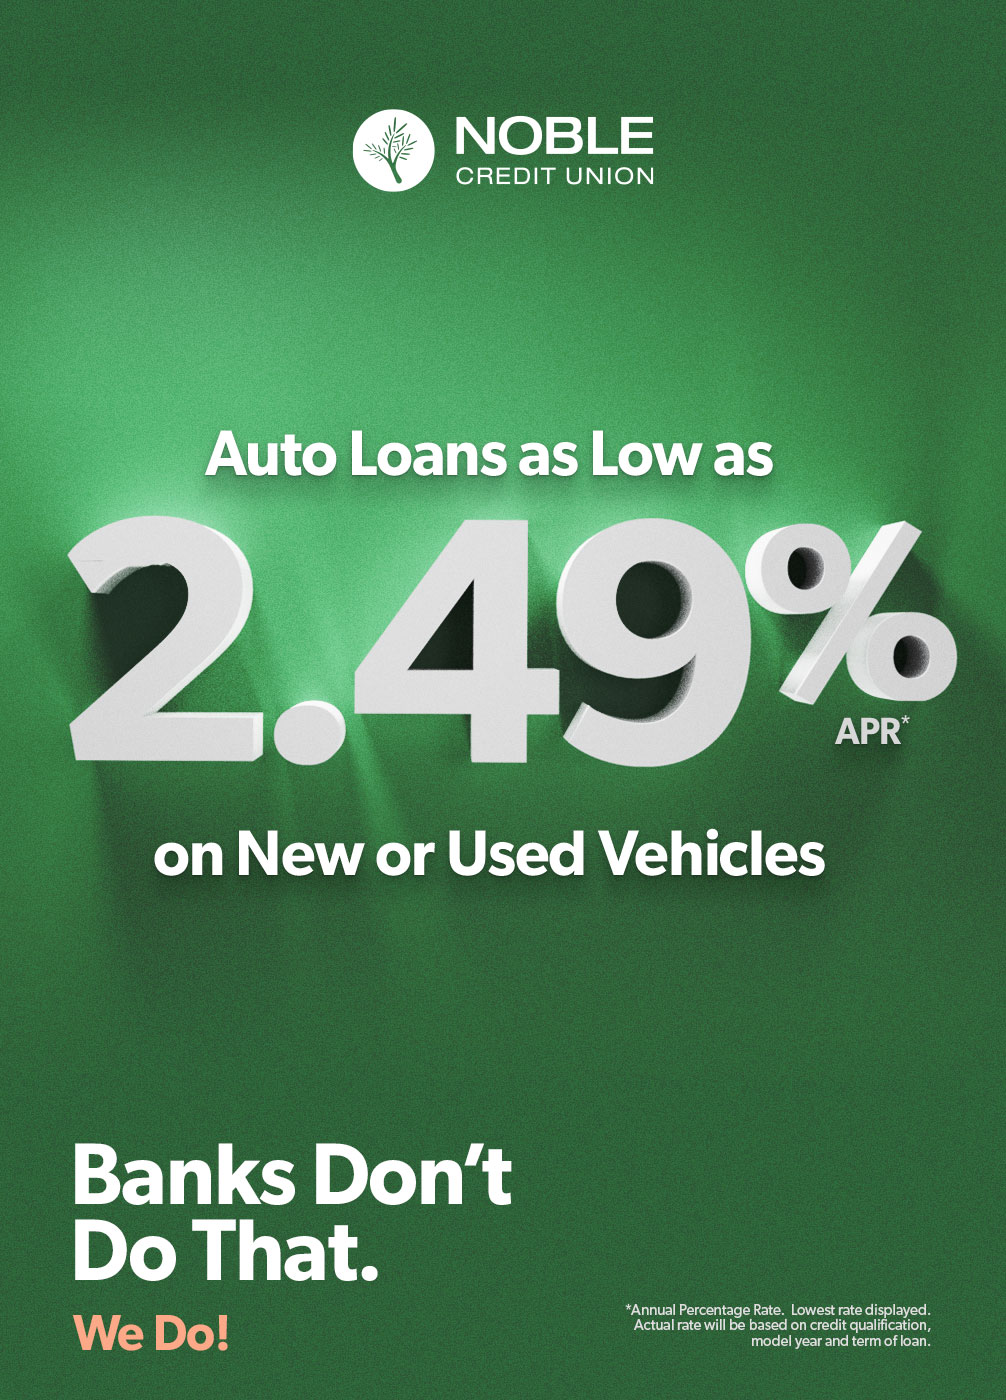 Noble Auto Loan Interest Rate Ad